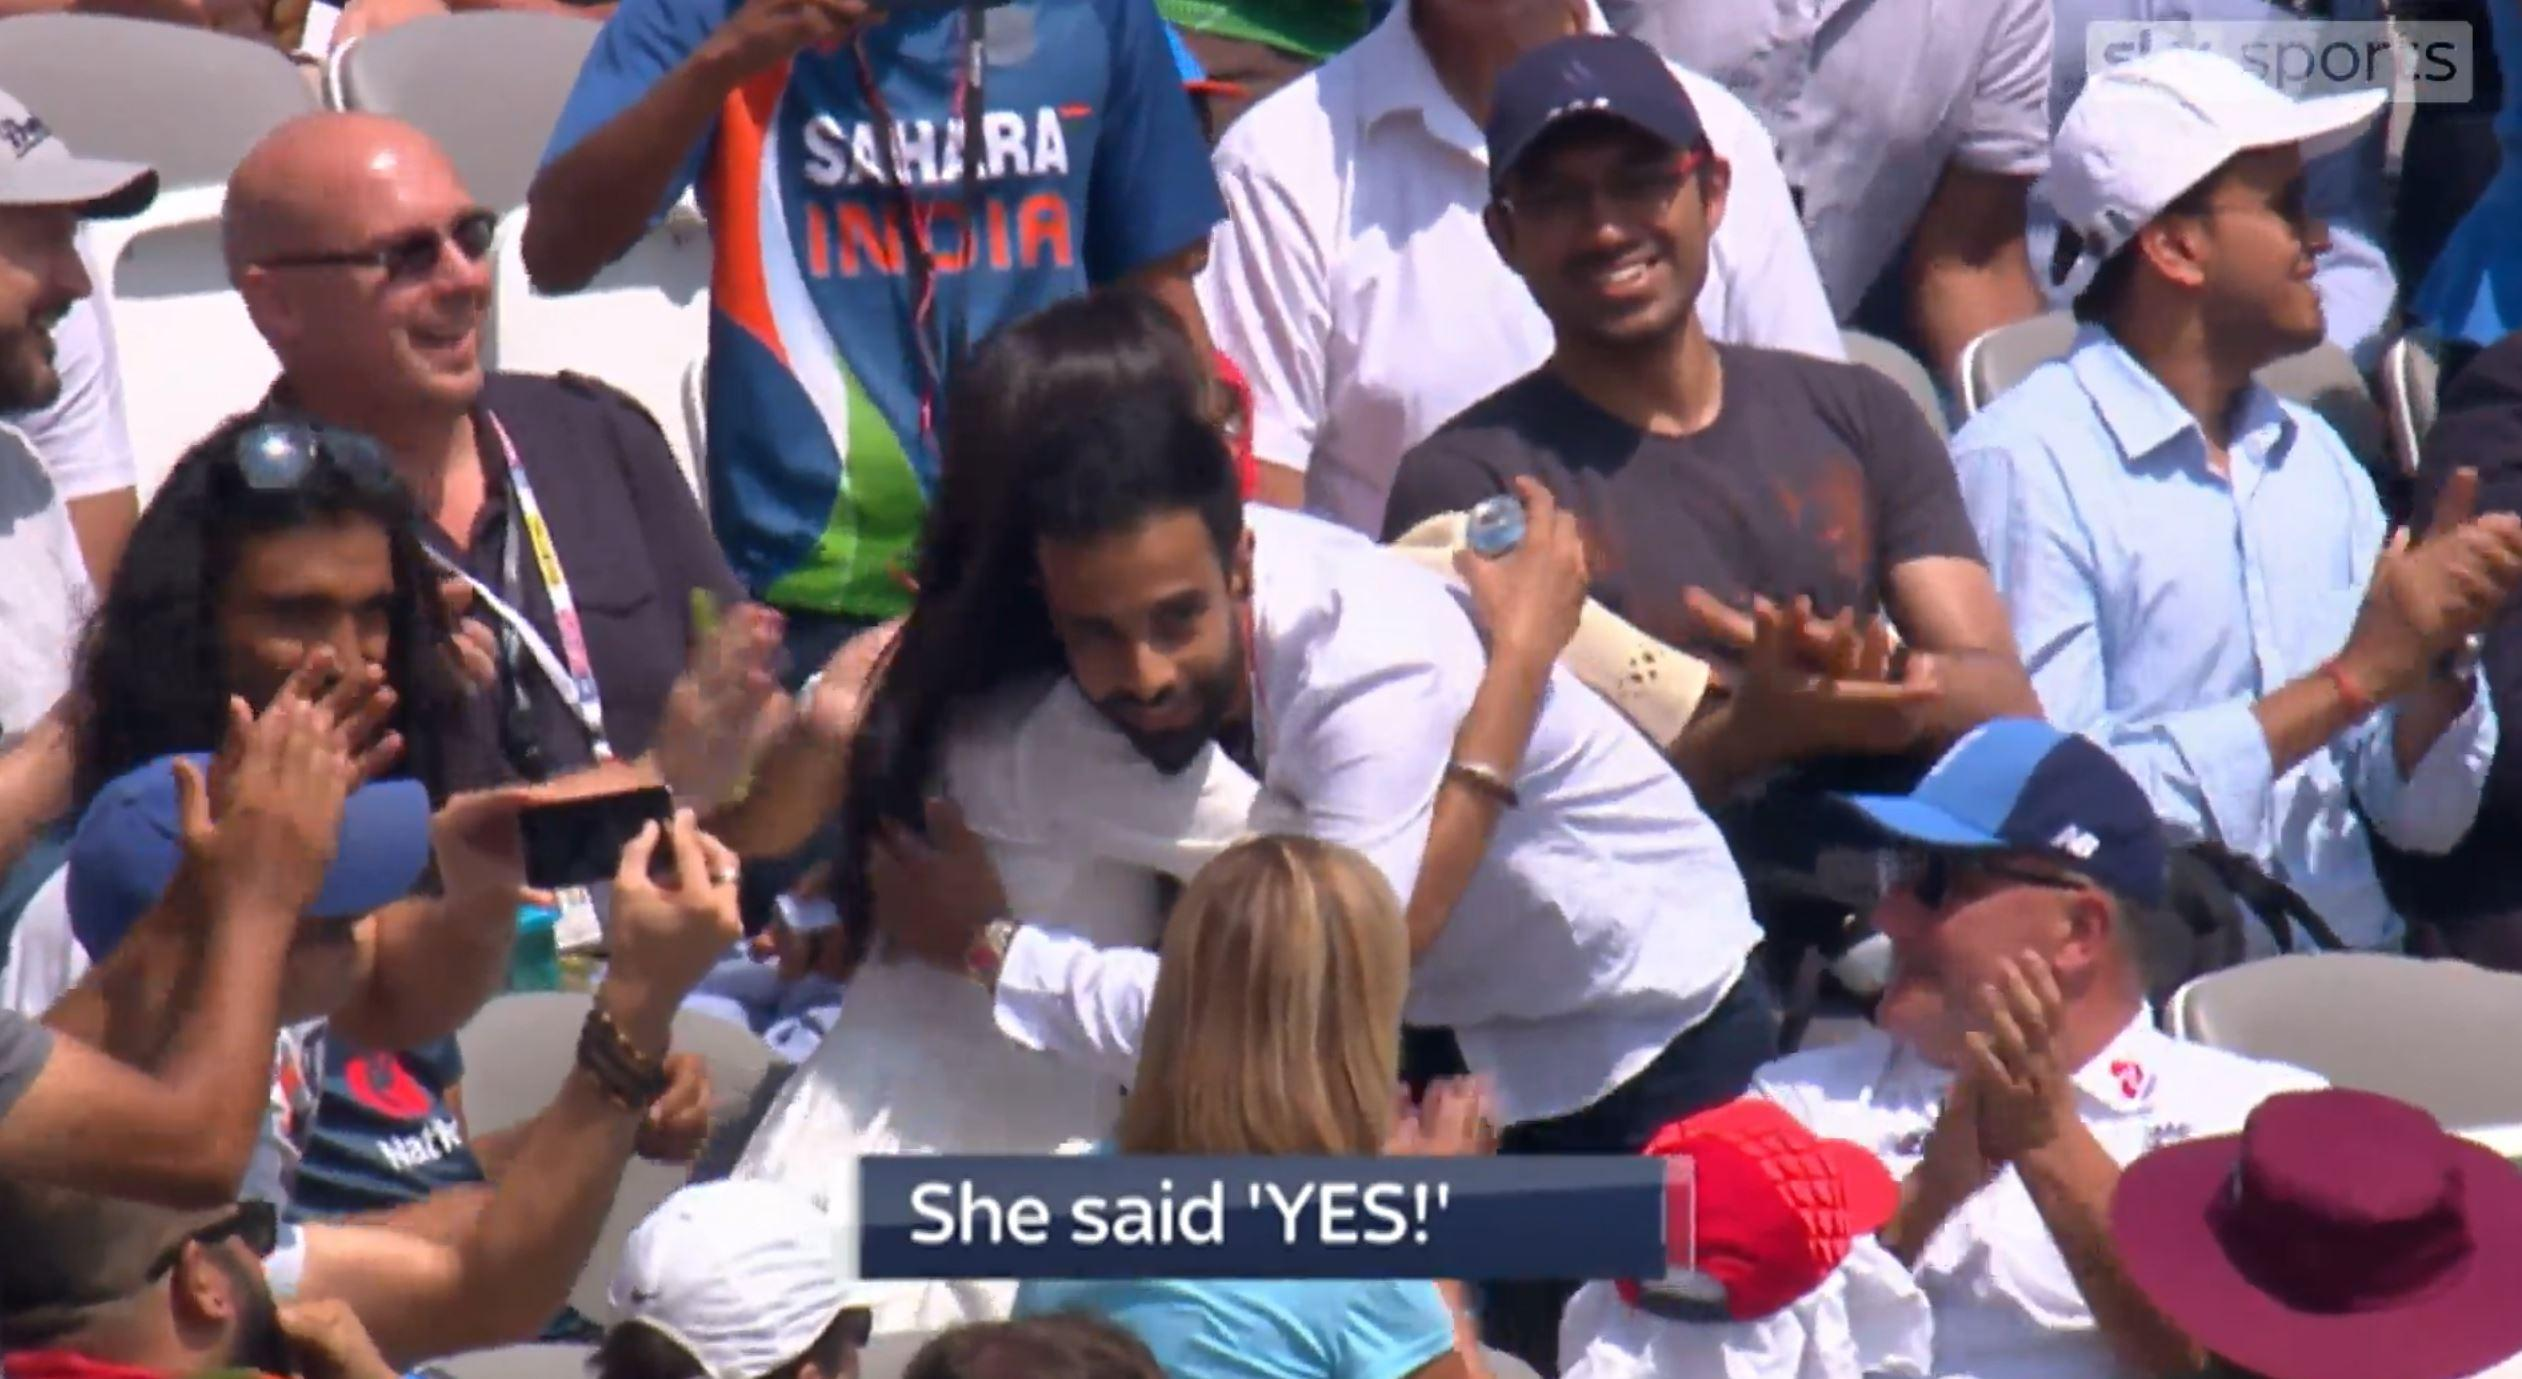 Charan Gills and Pavan Bains celebrate getting engaged at the cricket